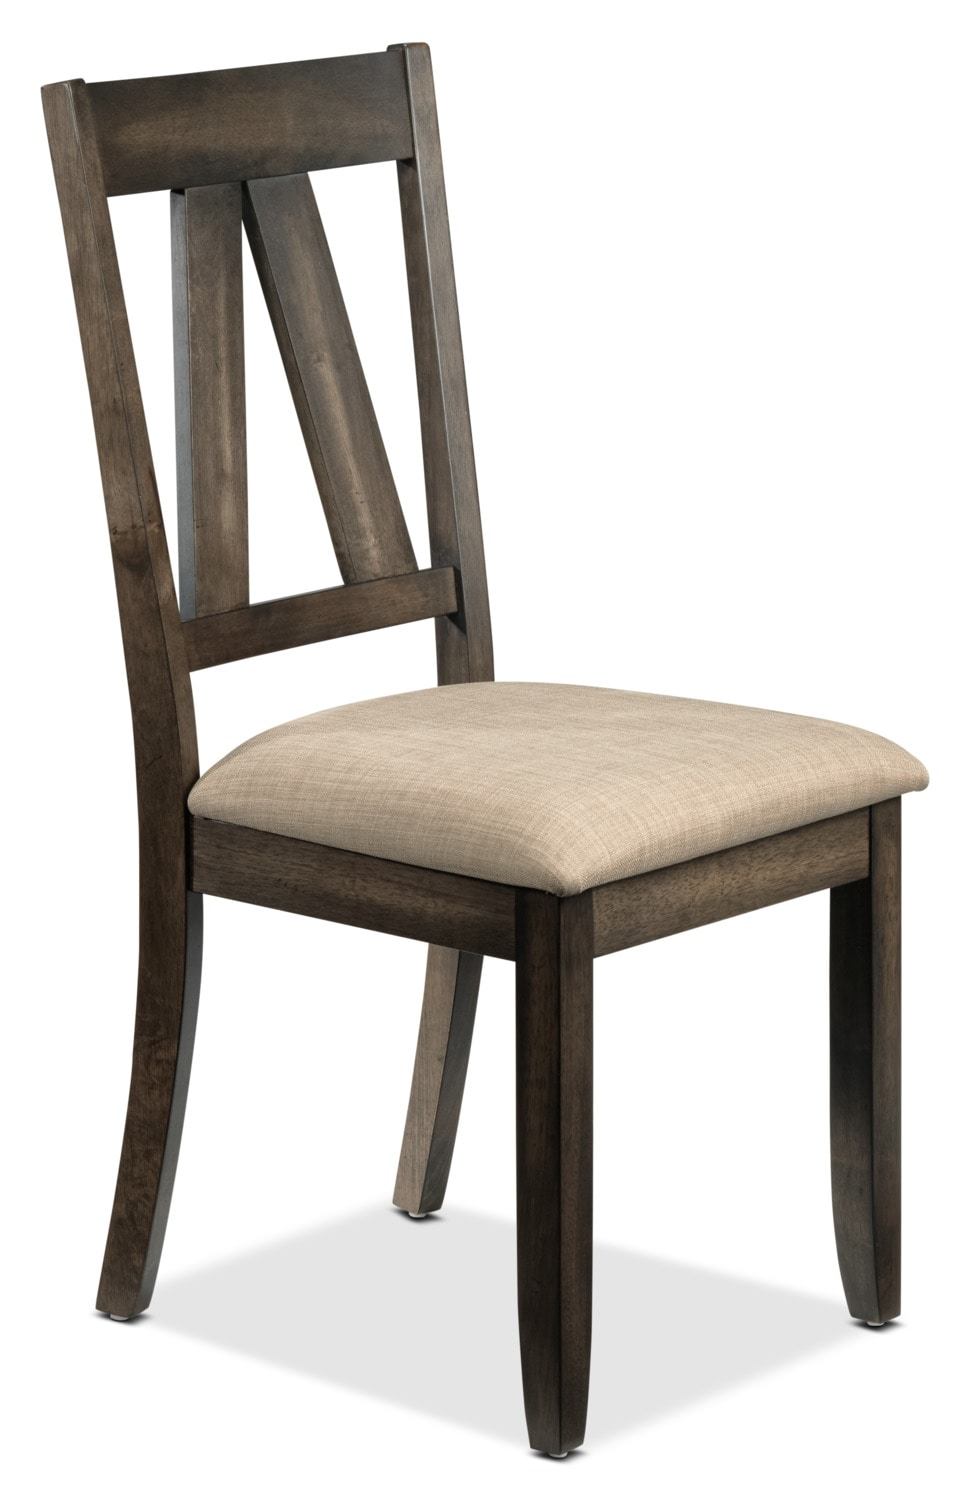 Dining Room Furniture - Thompson Side Chair - Espresso